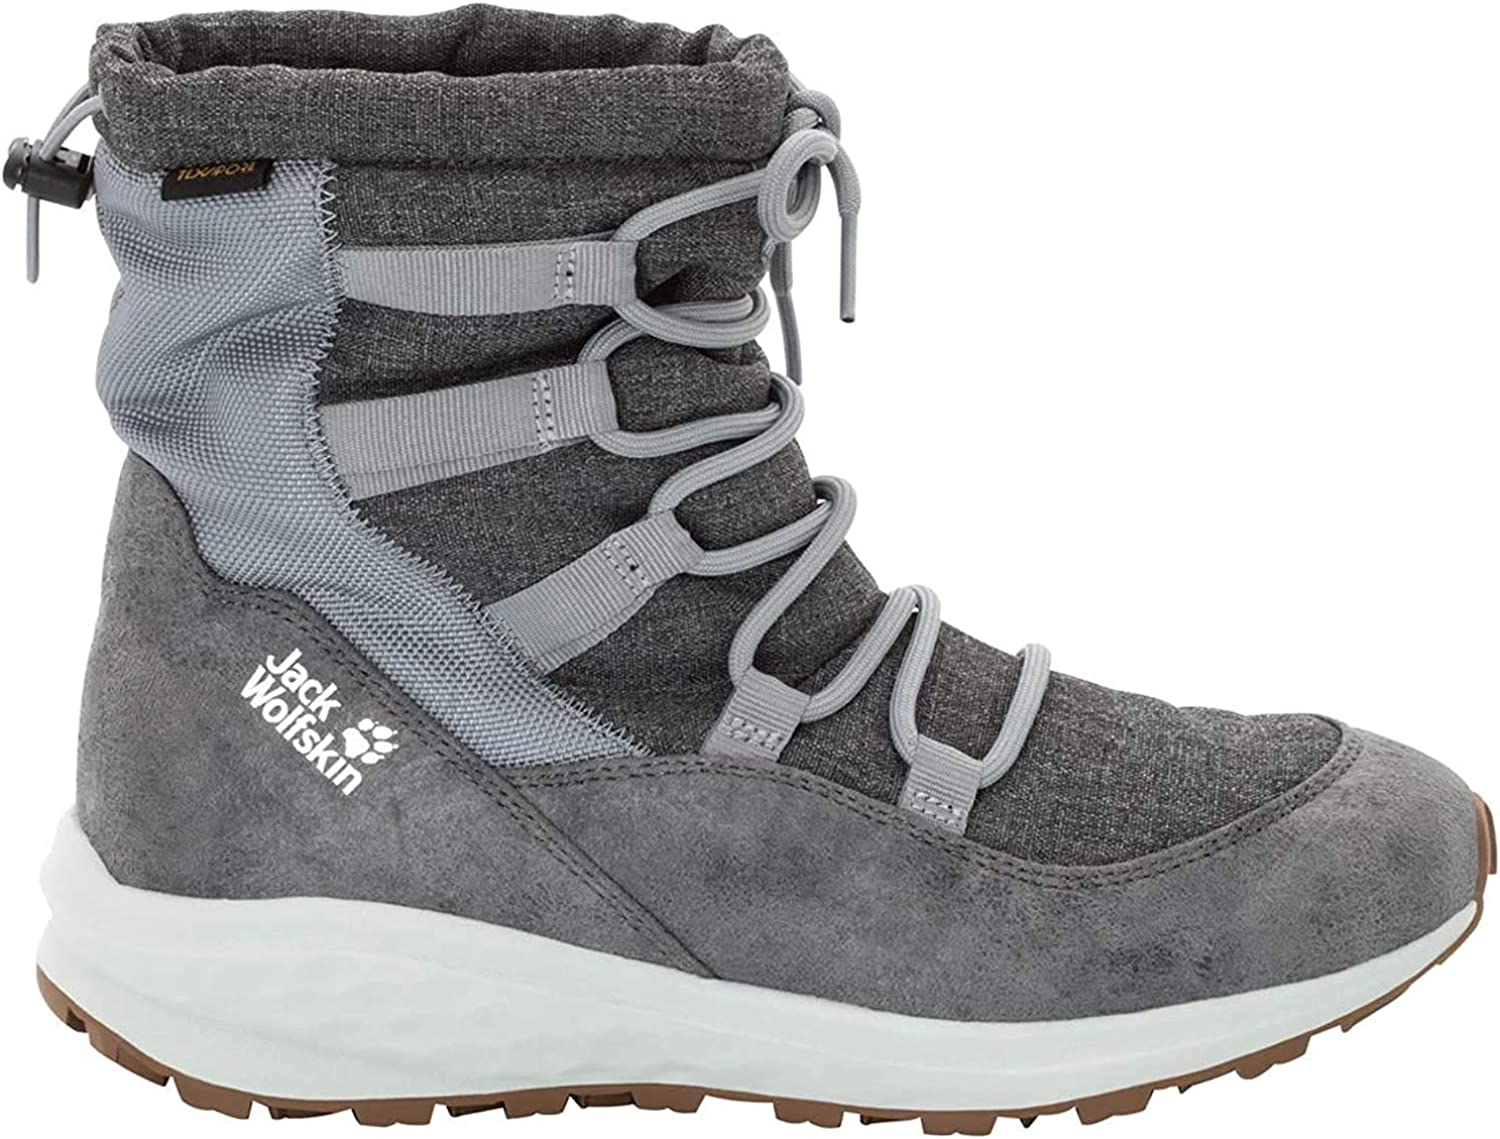 Jack Wolfskin Women s Nevada Texapore MID Waterproof Winter Boot with Fleece Lining Snow, Grey White, US Women s 11 D US